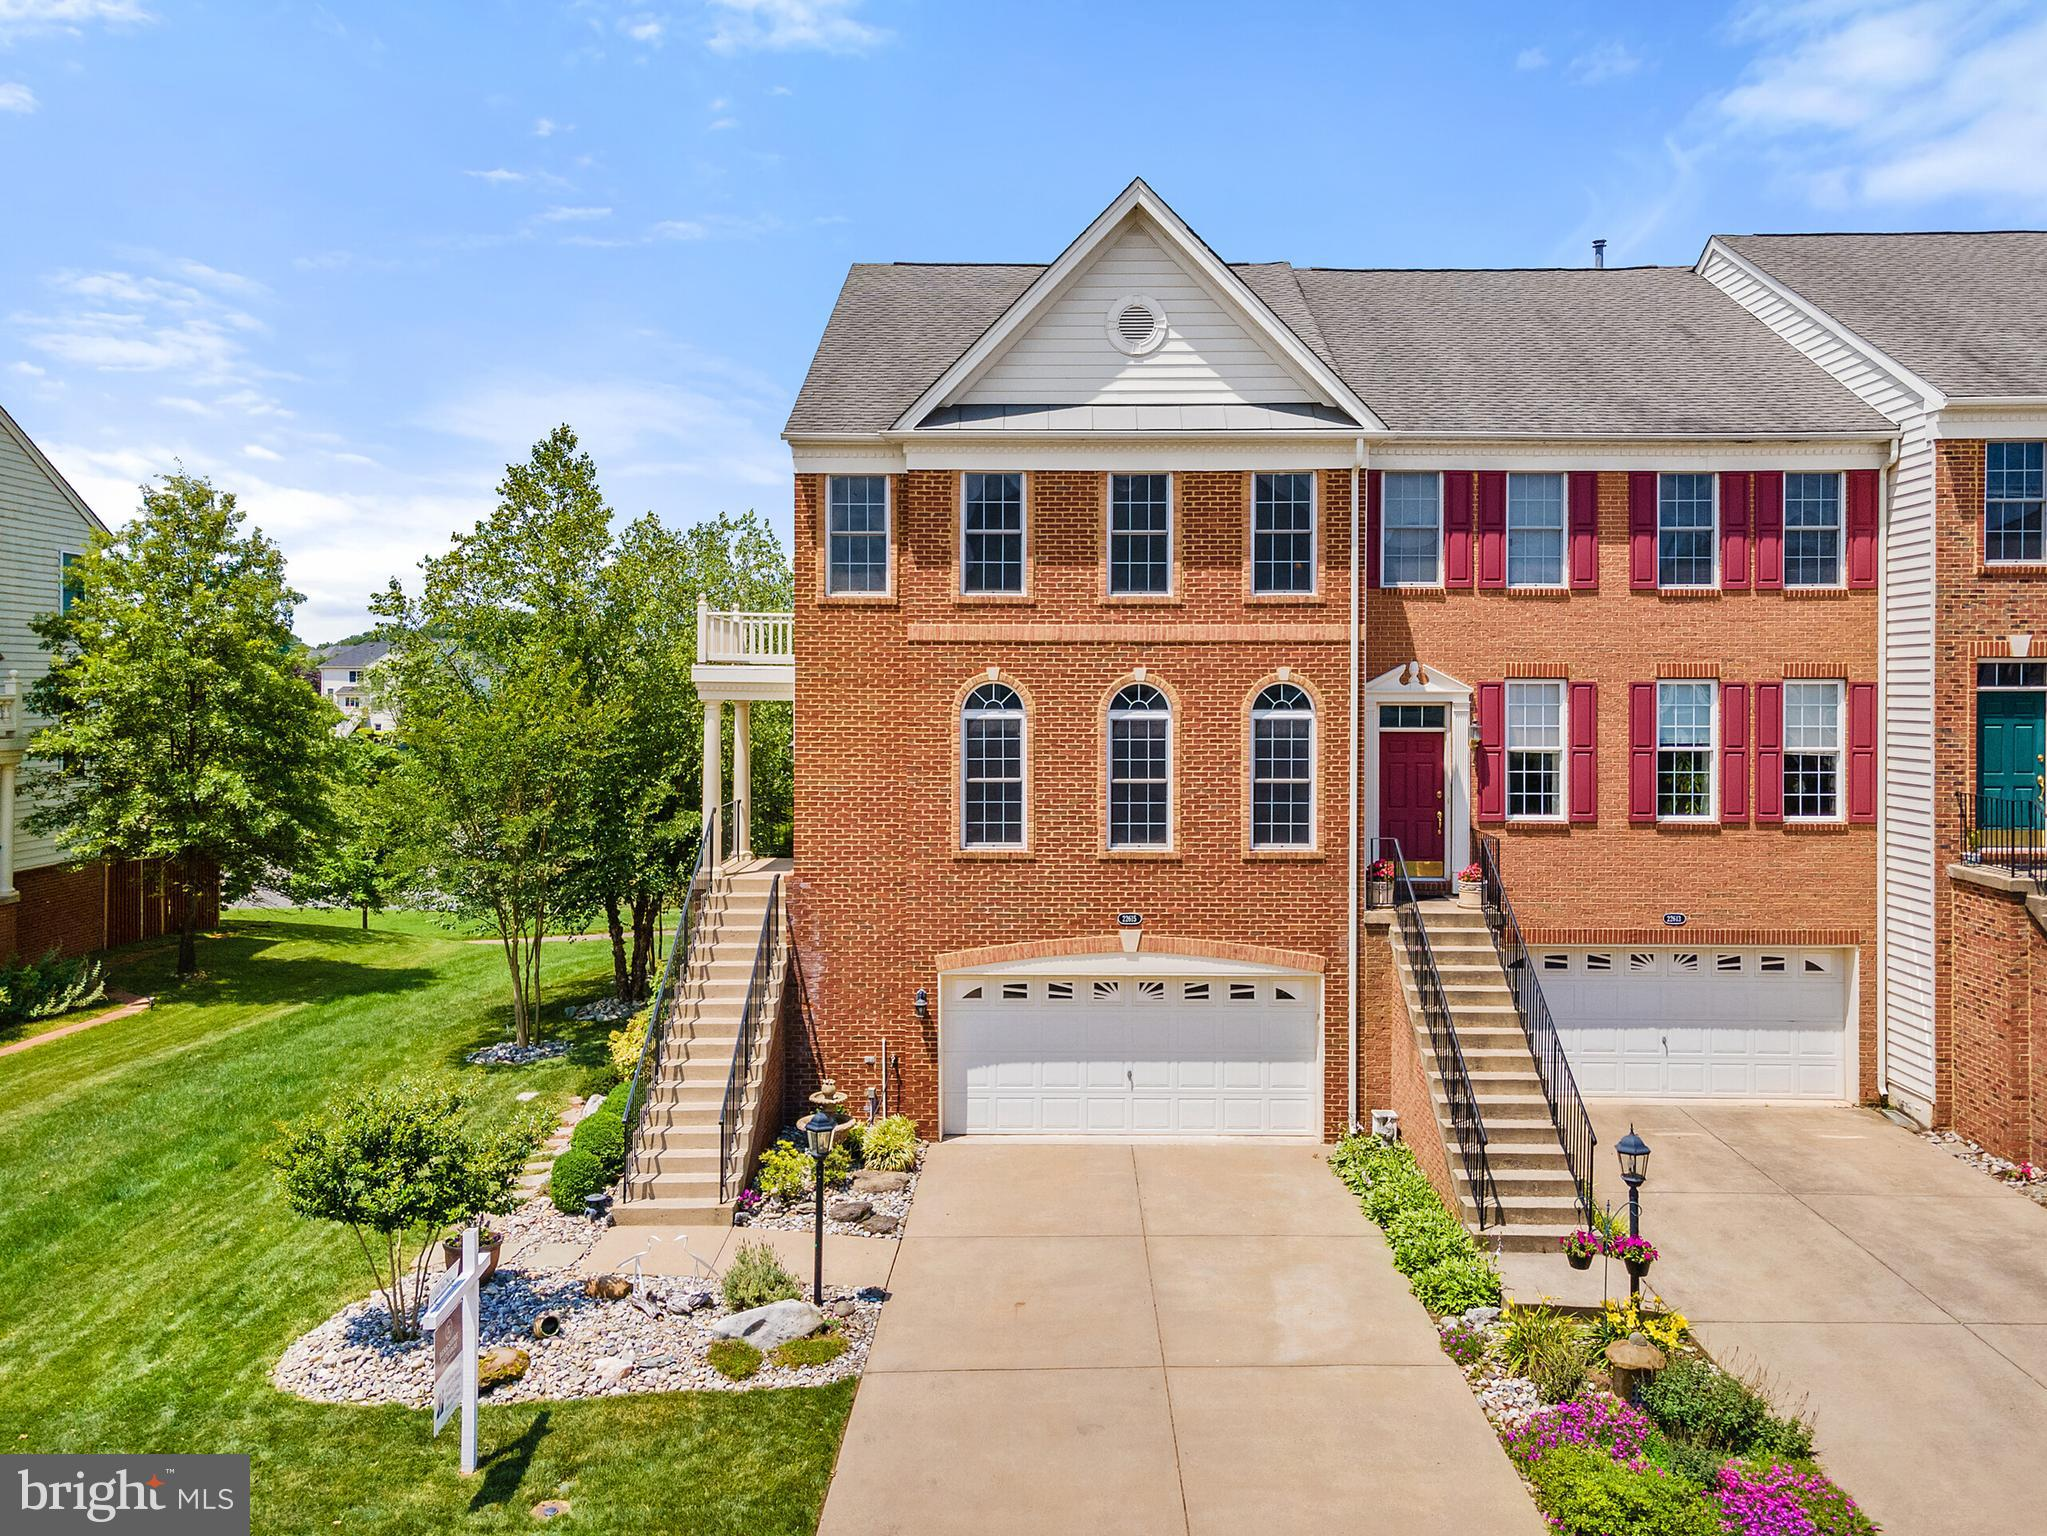 Welcome Home to 22615 Upperville Heights Sq., Ashburn VA.  This Beautiful Brick Front End Unit Townhome with a Large Stunning Backyard Patio, Mature and Manicured Landscaping with Irrigation System while Overlooking the Magnificent Body of Water that is Perfectly Situated Behind this Home for Amazing Water and Serene Views.  This Home Features 3 Levels, 3 Bedrooms, 3.5 Bathrooms, Large 2 Car Garage with Storage, and Approximately 3,147 of Finished Sq Ft Living Space.  The Main Level Includes Foyer, Living Room, Dining Room, Kitchen with Island, Family Room and Sunroom with Access to the Deck.  The Upper Level Includes the Large Owners Suite with 2 Walk-In Closets, Vaulted Ceilings, and Ensuite Bathroom with Soaking Tub with Separate Shower Along with 2 Additional Generous Sized Bedrooms with Vaulted Ceilings, Full Bathroom and Laundry.  The Lower Level Includes Second Family Room Area / Recreation Room, Full Bathroom, Work Out Area, Access to the 2 Car Garage and Walk-Out Access to the Large Stunning Paver Patio and Backyard.   This Home is Conveniently Located to Shopping, Restaurants, Movie Theatre, Library, Access to Major Roadways for an Easy Commute to Northern Virginia, Washington DC, and Maryland.  The Brand-New Silver Line Metro that will be Opening in the Near Future is within a 5-10 Minute Drive and Access to Dulles International Airport is a Short 10-15 Minute Drive Away.  Amenities within Loudoun Valley Estates Includes Swimming Pool, Clubhouse, Fitness Center, Walking Trails, Pond with Fountain Just Behind the Home, Tennis Court and Soccer/Baseball fields.